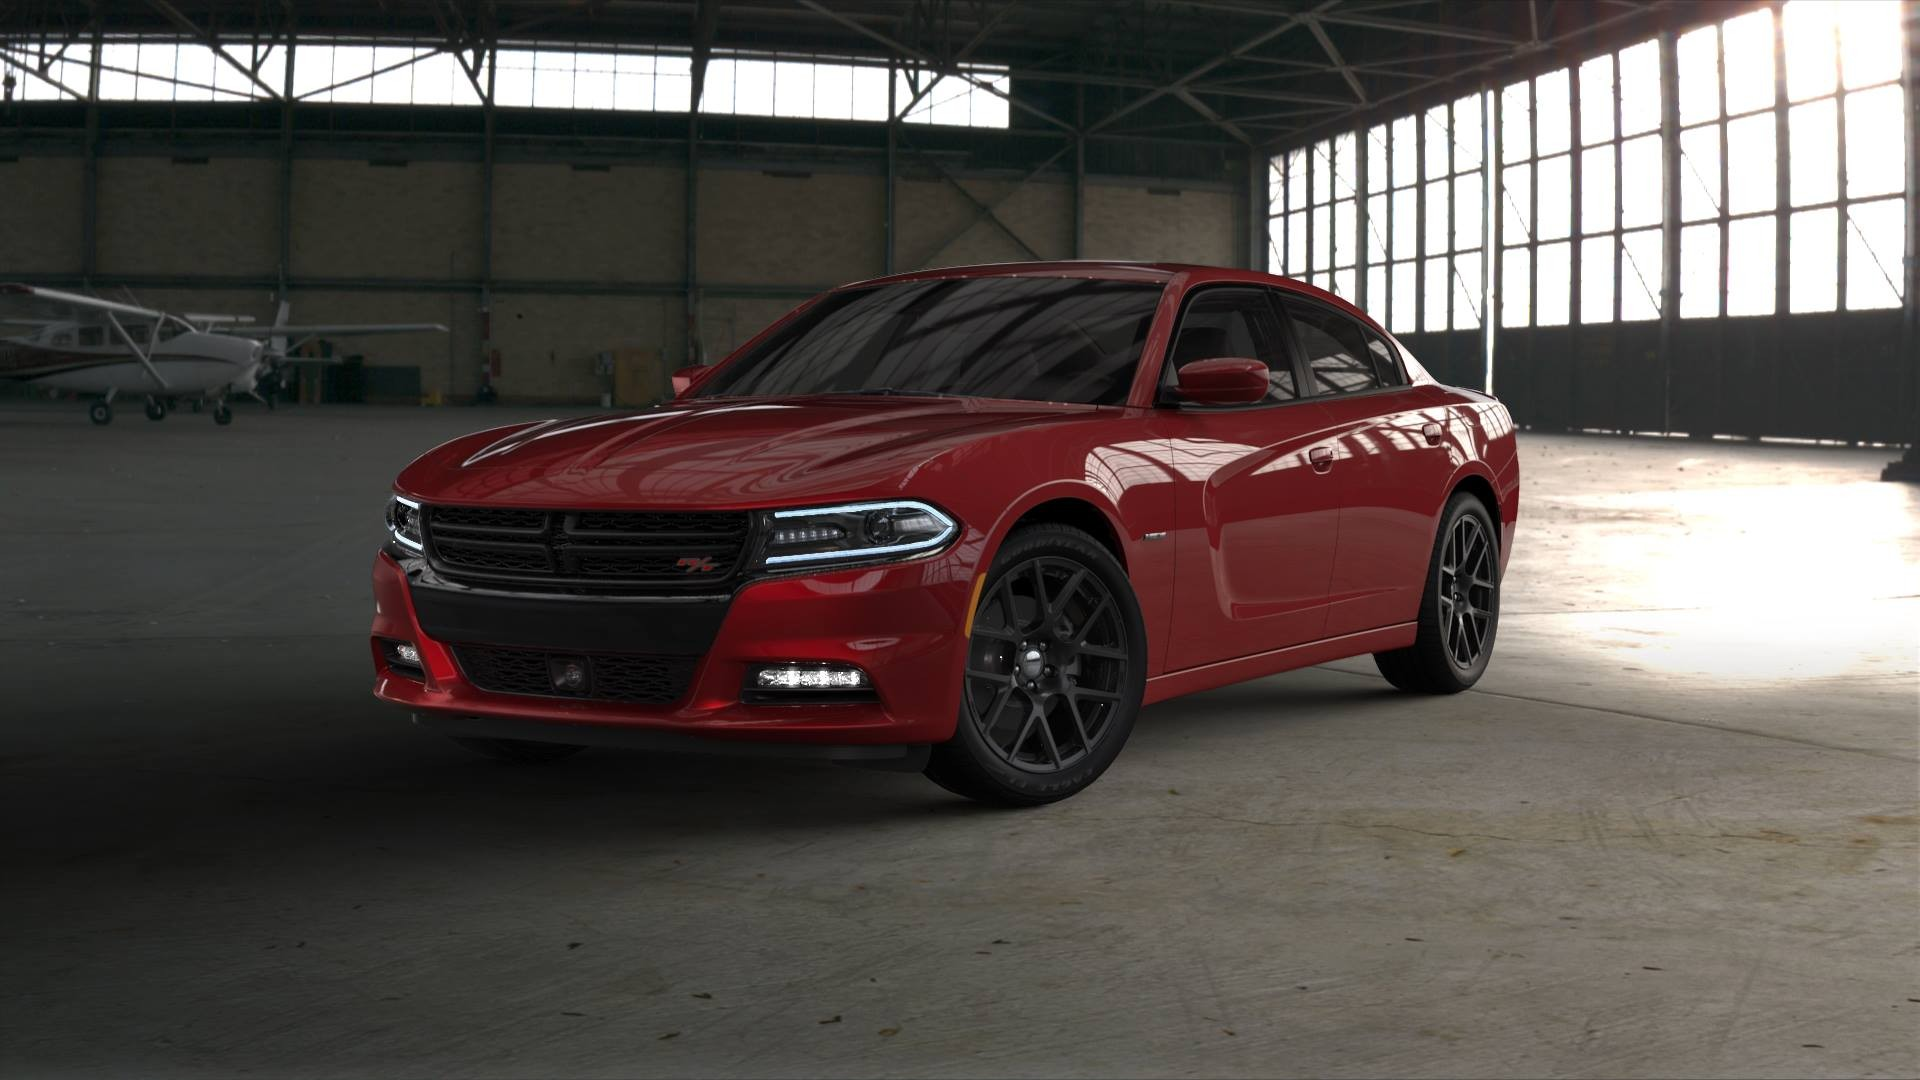 Hd Muscle Car Wallpapers For Mobile Dodge Dodge Charger Car Muscle Cars Red Cars